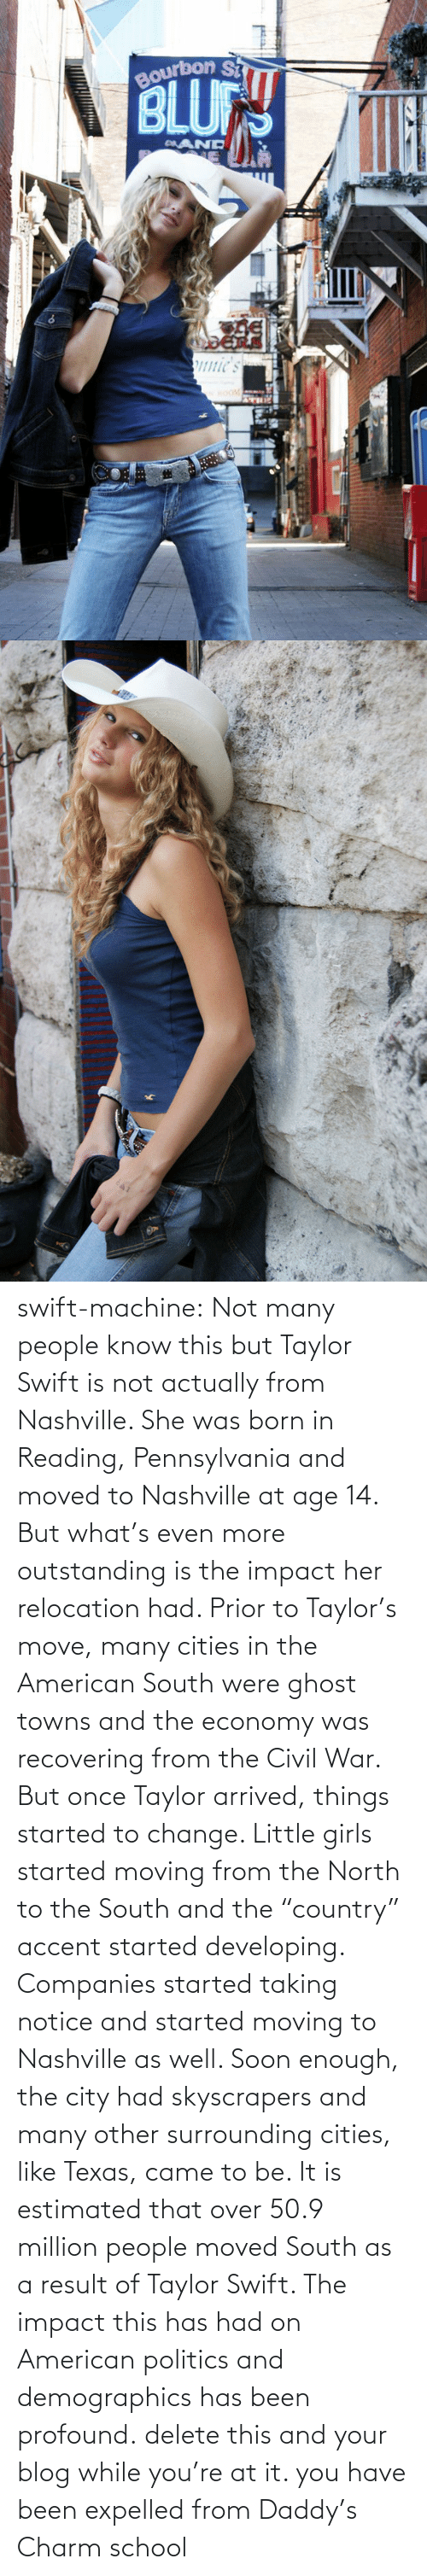 "Well Soon: Bourbon S  BLU  eAND  ERE  1nie's swift-machine:  Not many people know this but Taylor Swift is not actually from Nashville. She was born in Reading, Pennsylvania and moved to Nashville at age 14. But what's even more outstanding is the impact her relocation had. Prior to Taylor's move, many cities in the American South were ghost towns and the economy was recovering from the Civil War. But once Taylor arrived, things started to change. Little girls started moving from the North to the South and the ""country"" accent started developing. Companies started taking notice and started moving to Nashville as well. Soon enough, the city had skyscrapers and many other surrounding cities, like Texas, came to be. It is estimated that over 50.9 million people moved South as a result of Taylor Swift. The impact this has had on American politics and demographics has been profound.   delete this and your blog while you're at it. you have been expelled from Daddy's Charm school"